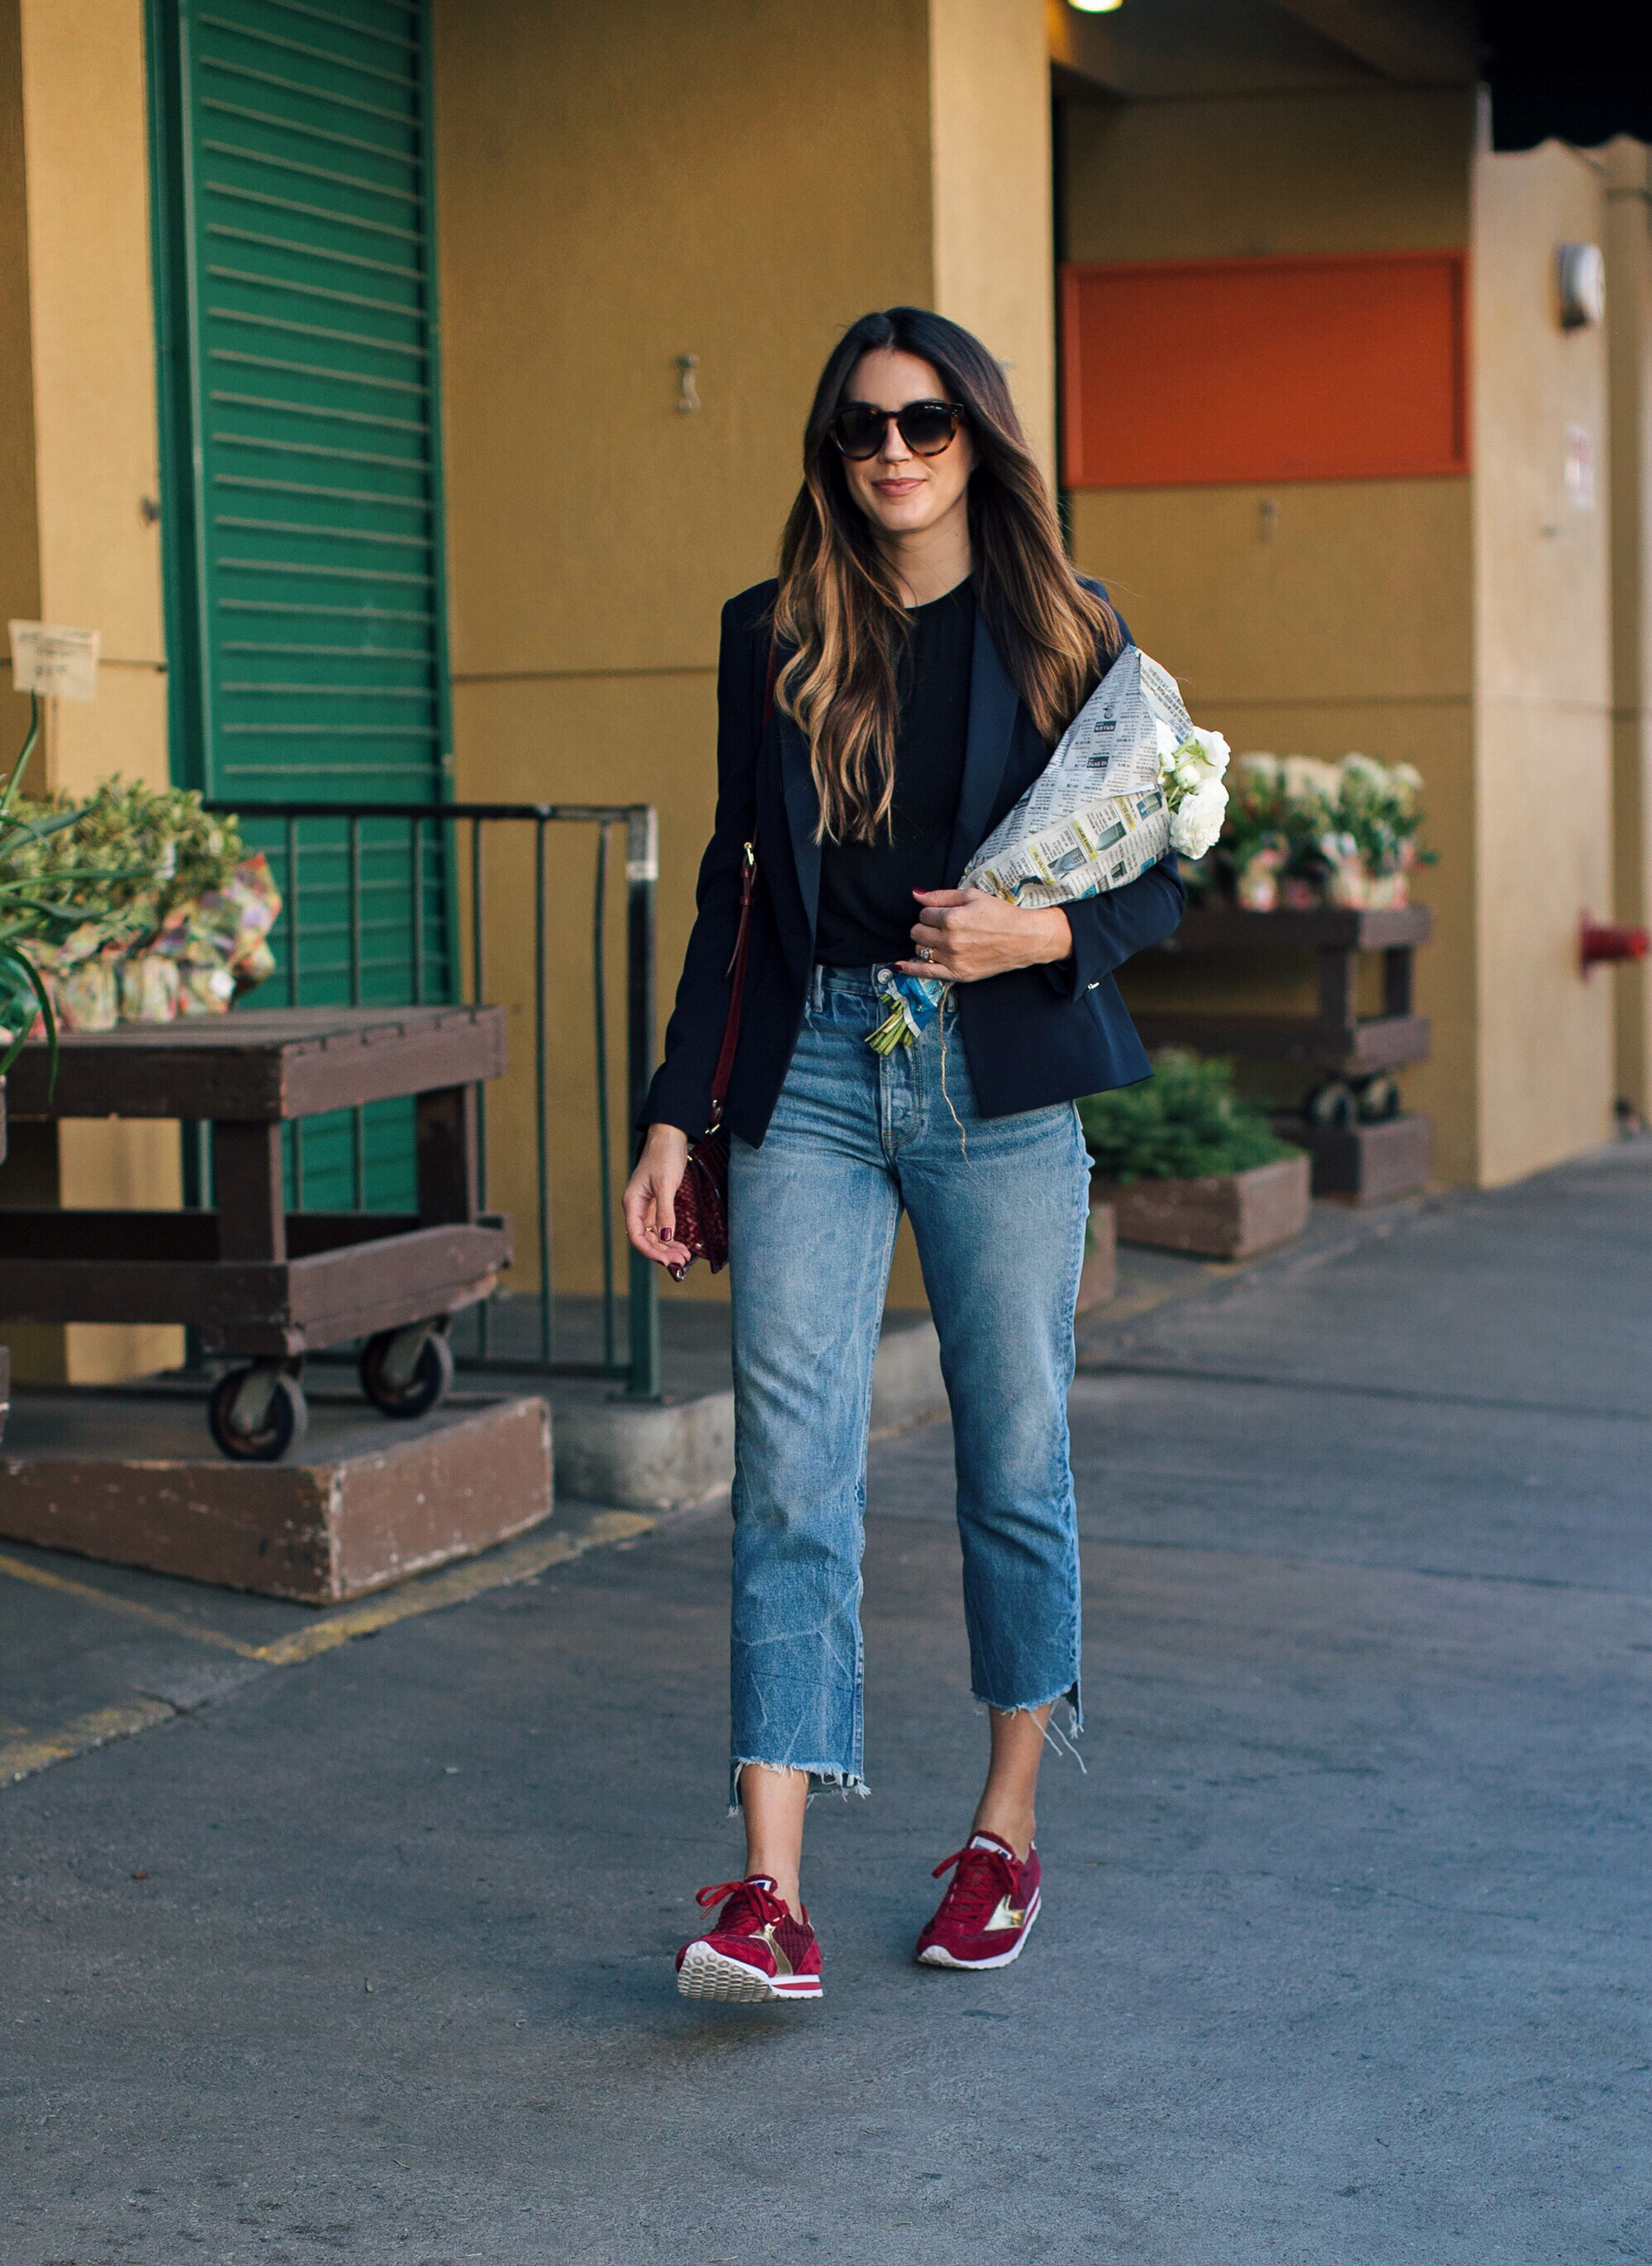 Red Sneakers Trend